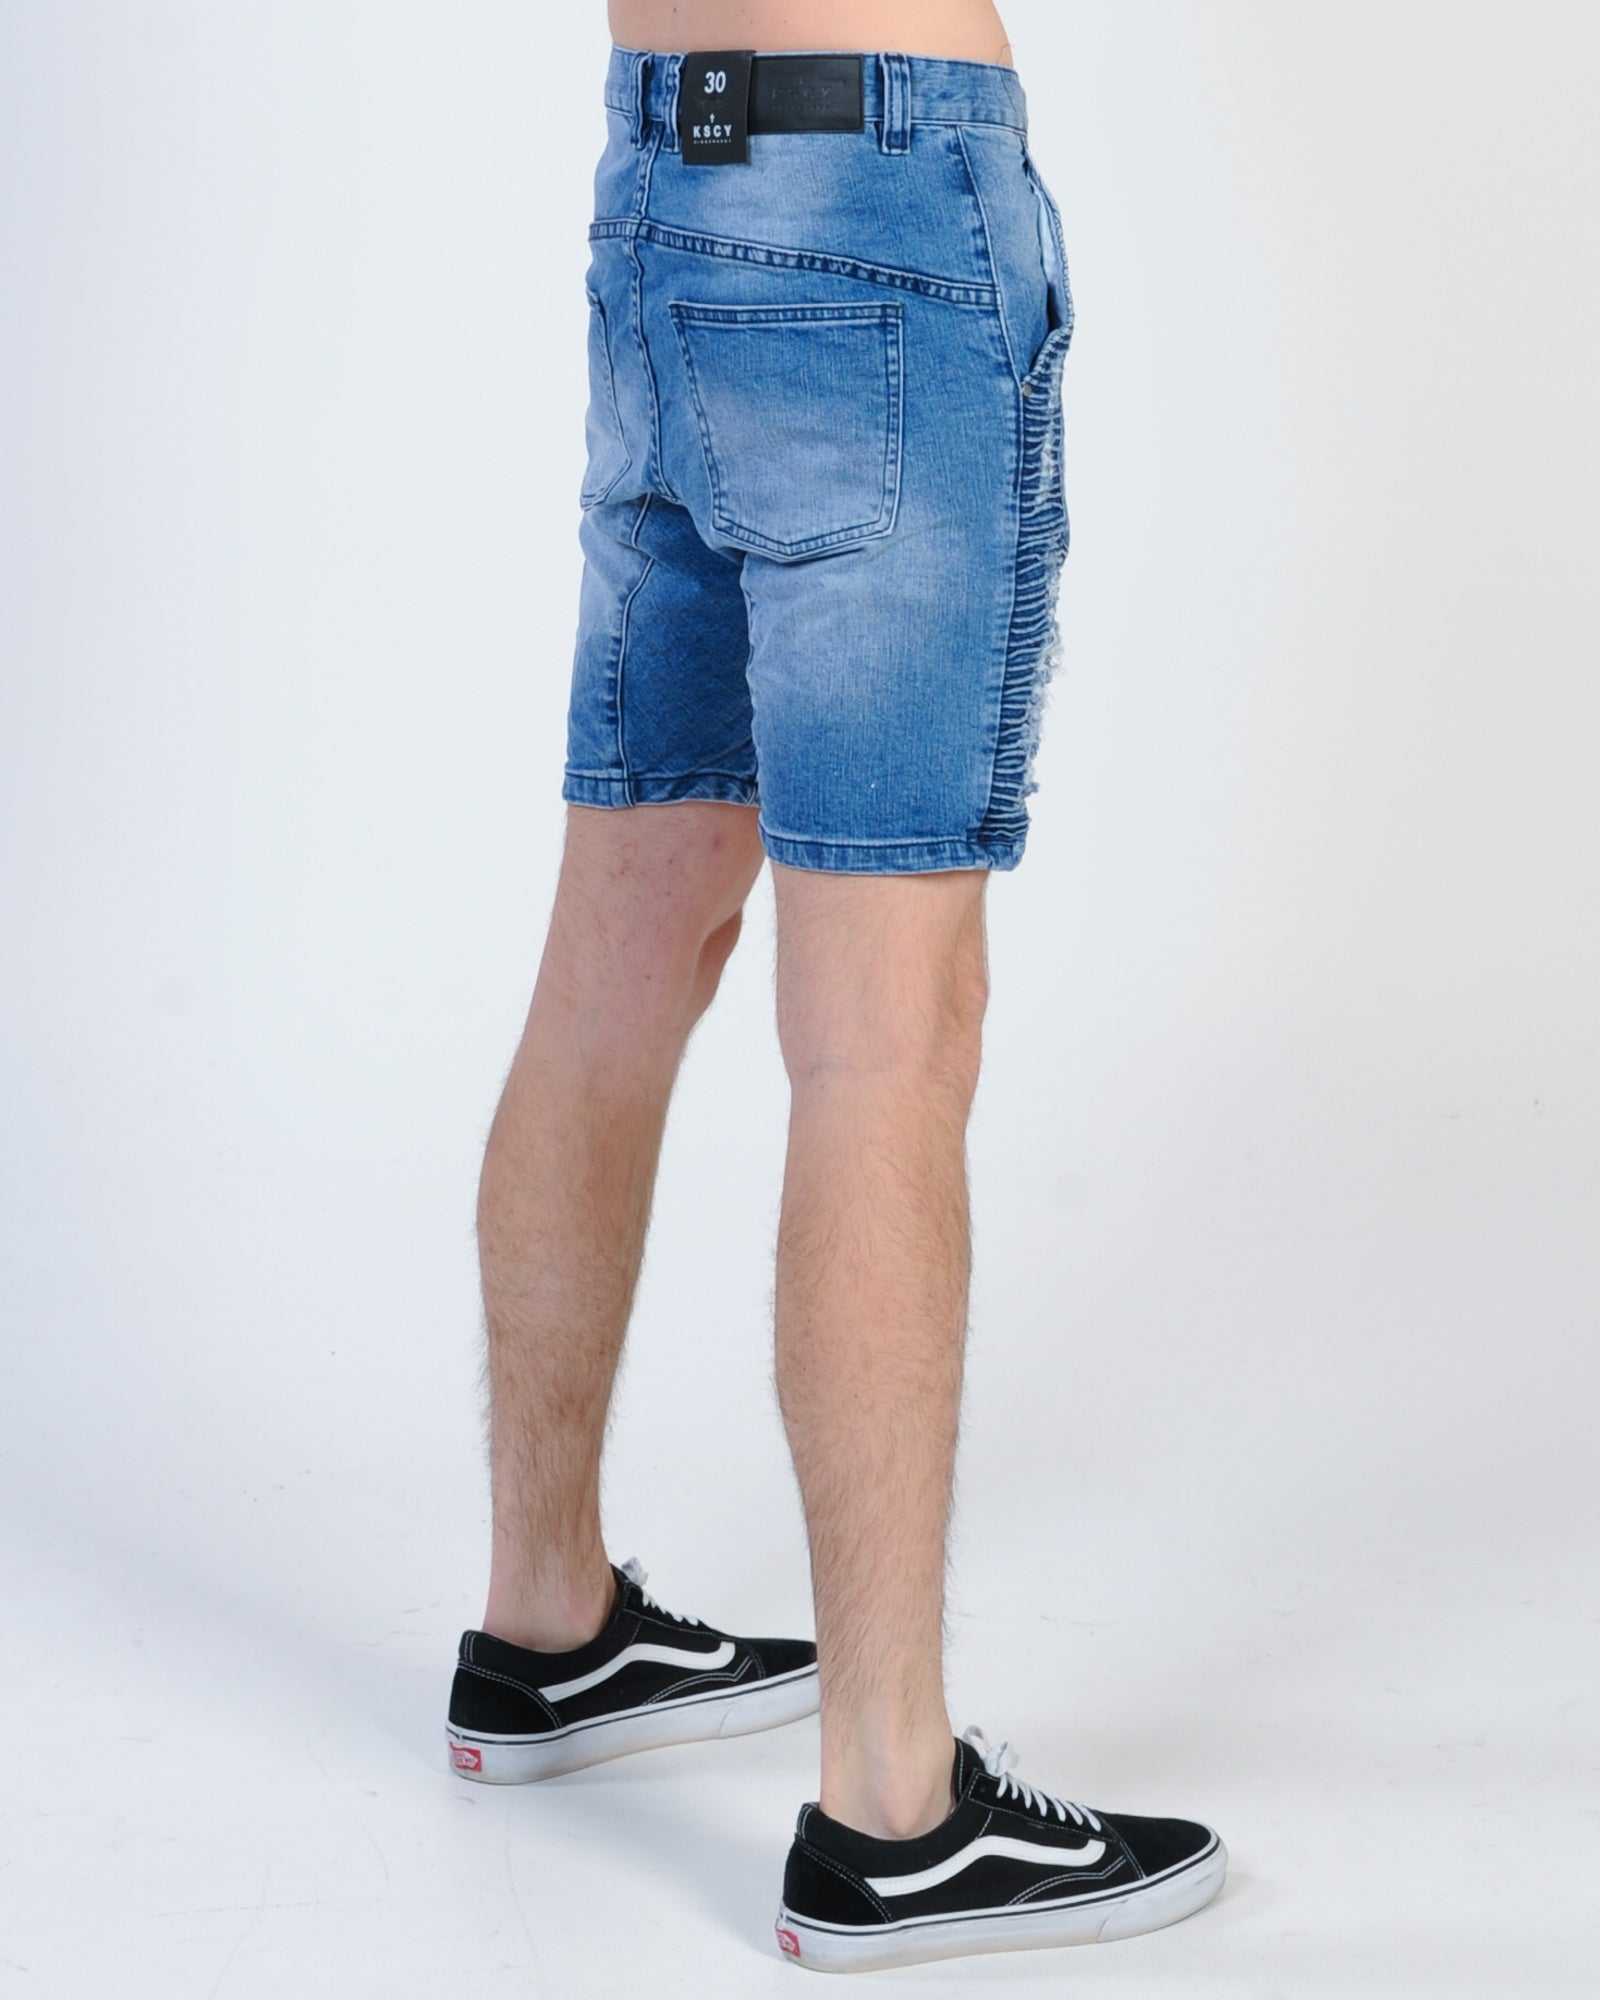 Kiss Chacey Zeppelin Denim Short - Sunfire Blue